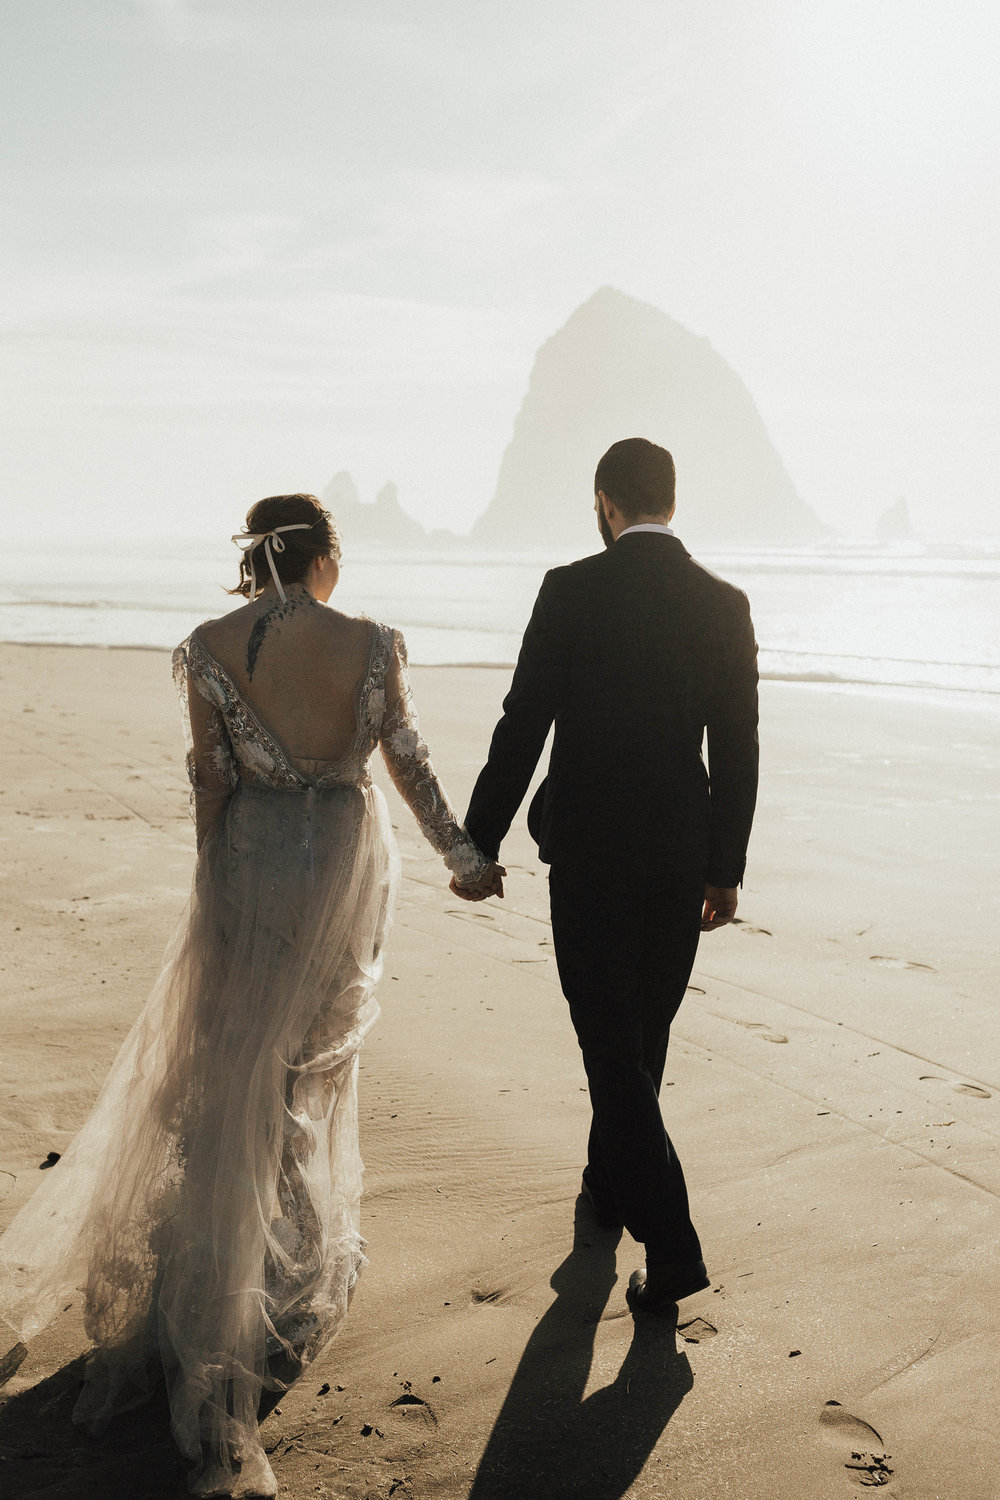 Cannon Beach Elopement - Michelle Larmand Photography - 058